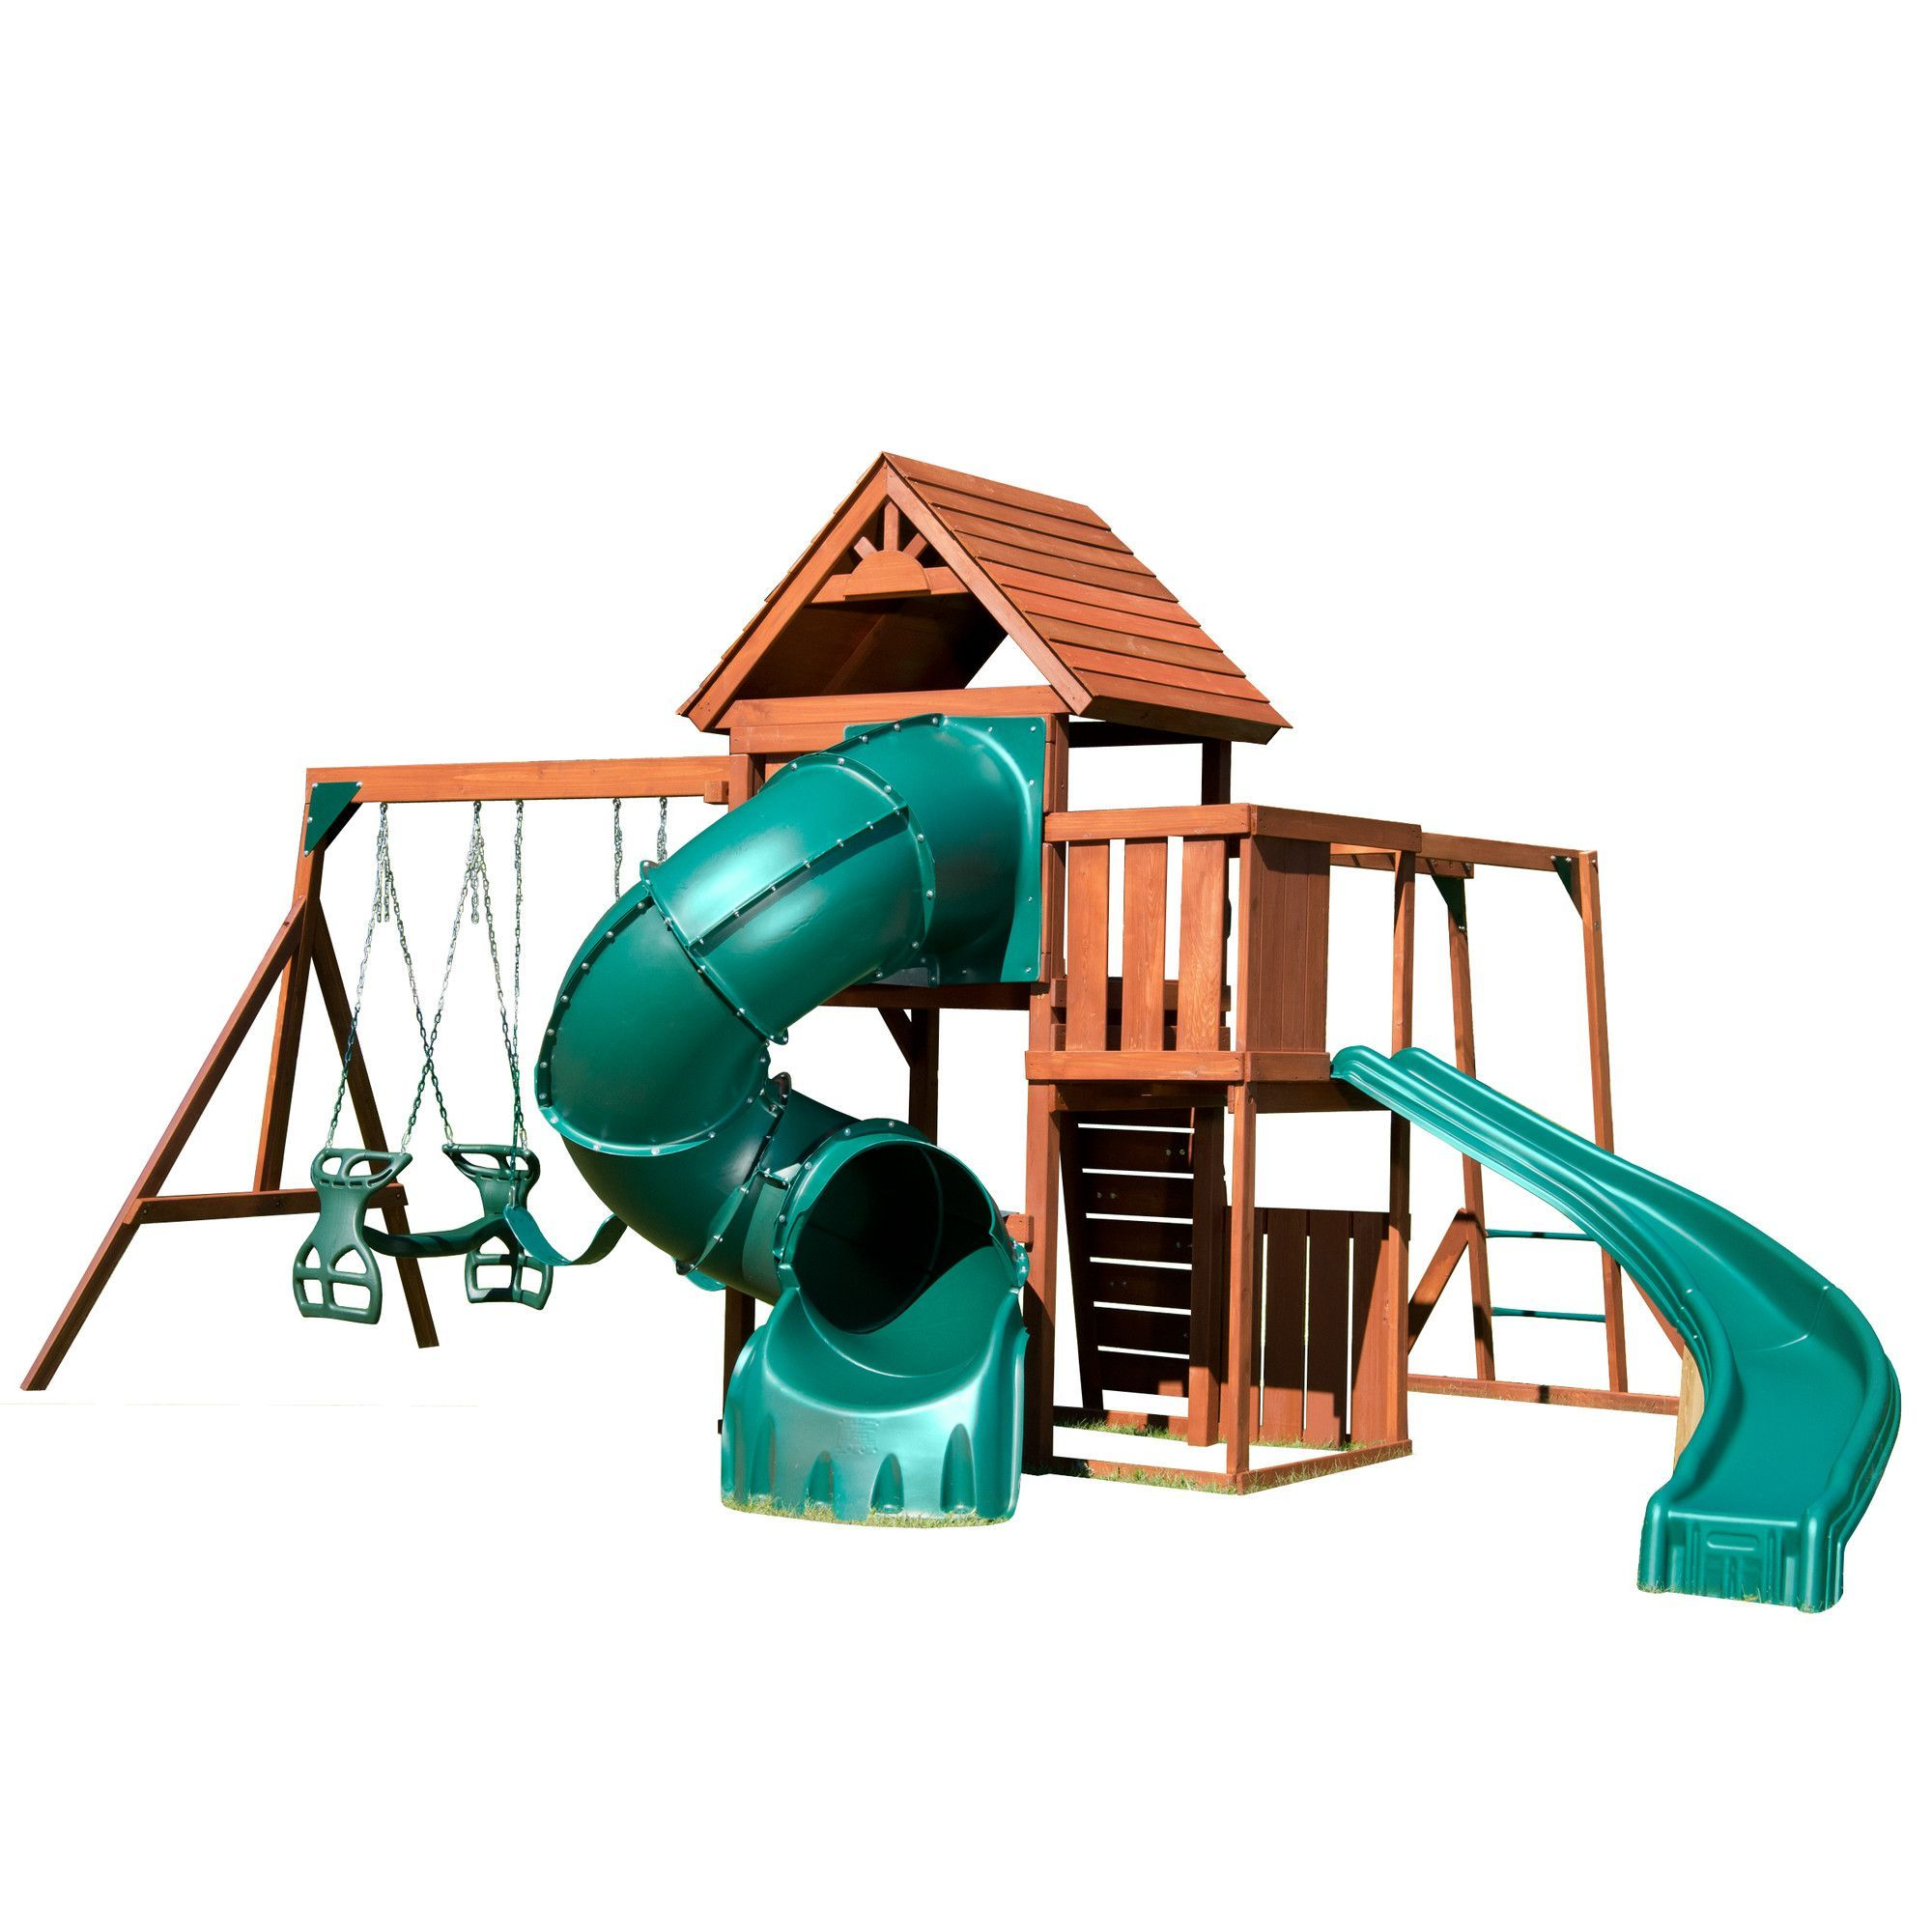 grandview twist complete swing set products pinterest twists